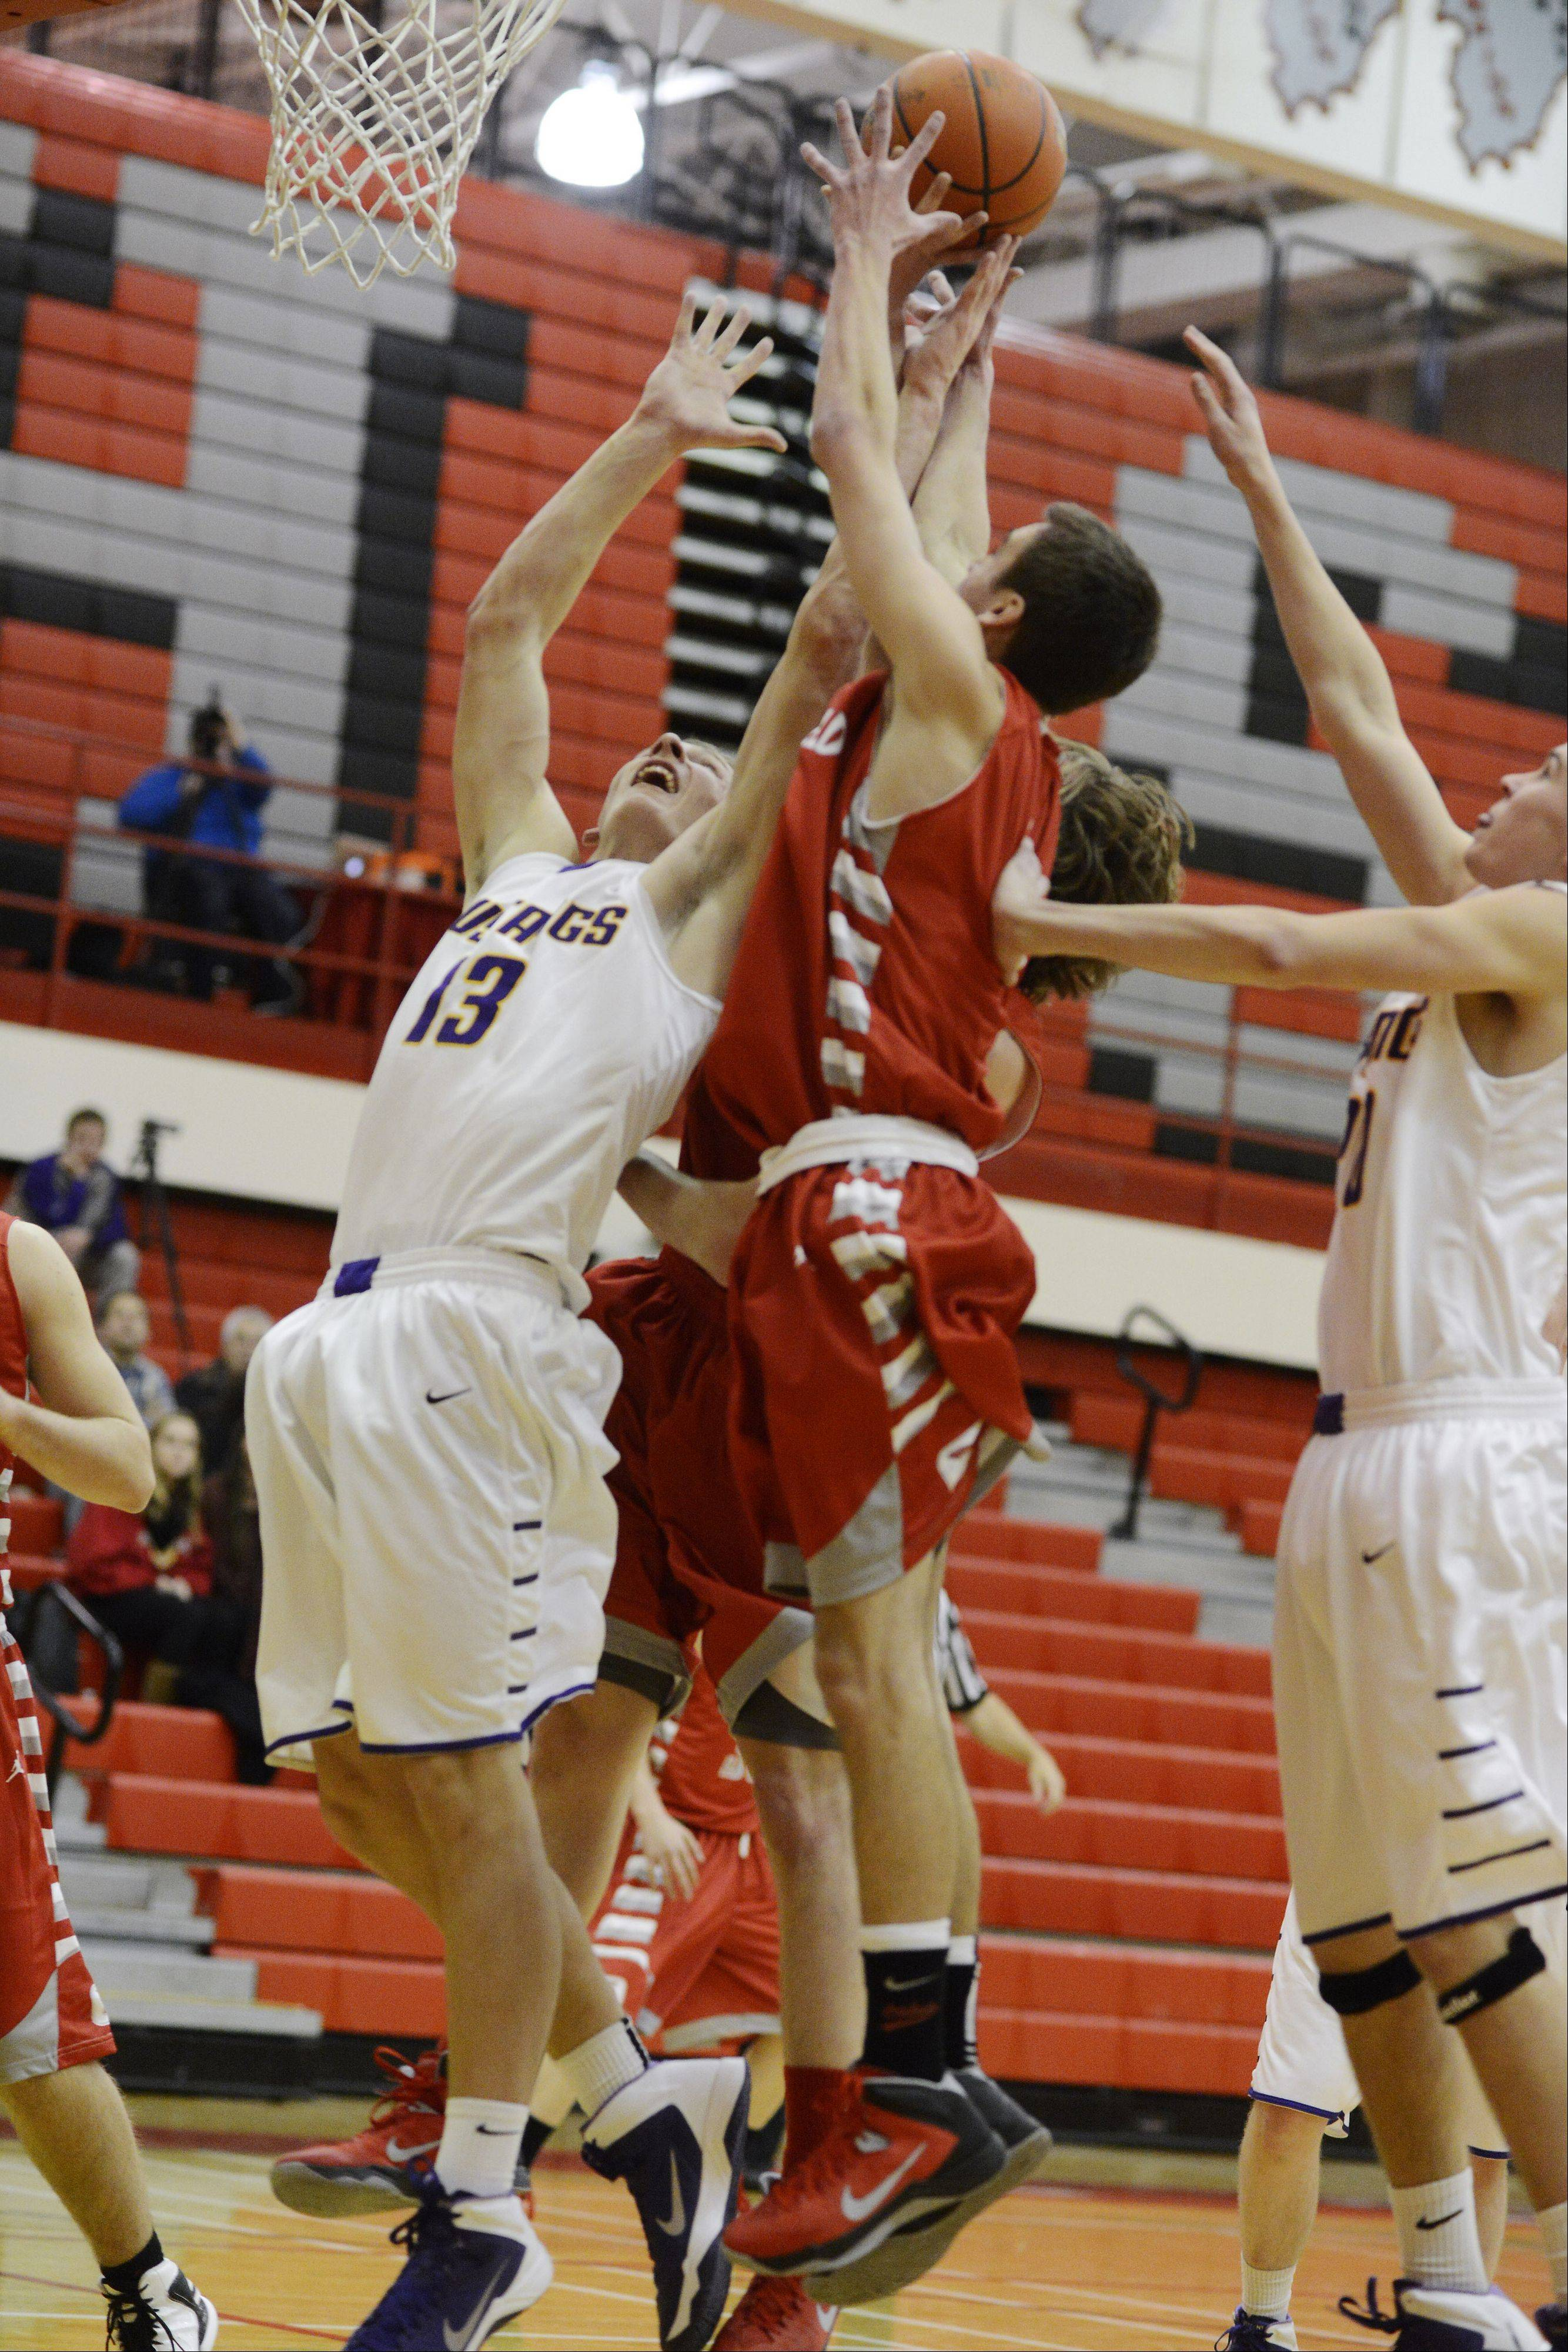 Rolling Meadows' Matt Dolan, left, and Pat Kramp, right, leap for a rebound against Deerfield's Jack Gurvey during Tuesday's game in Palatine.